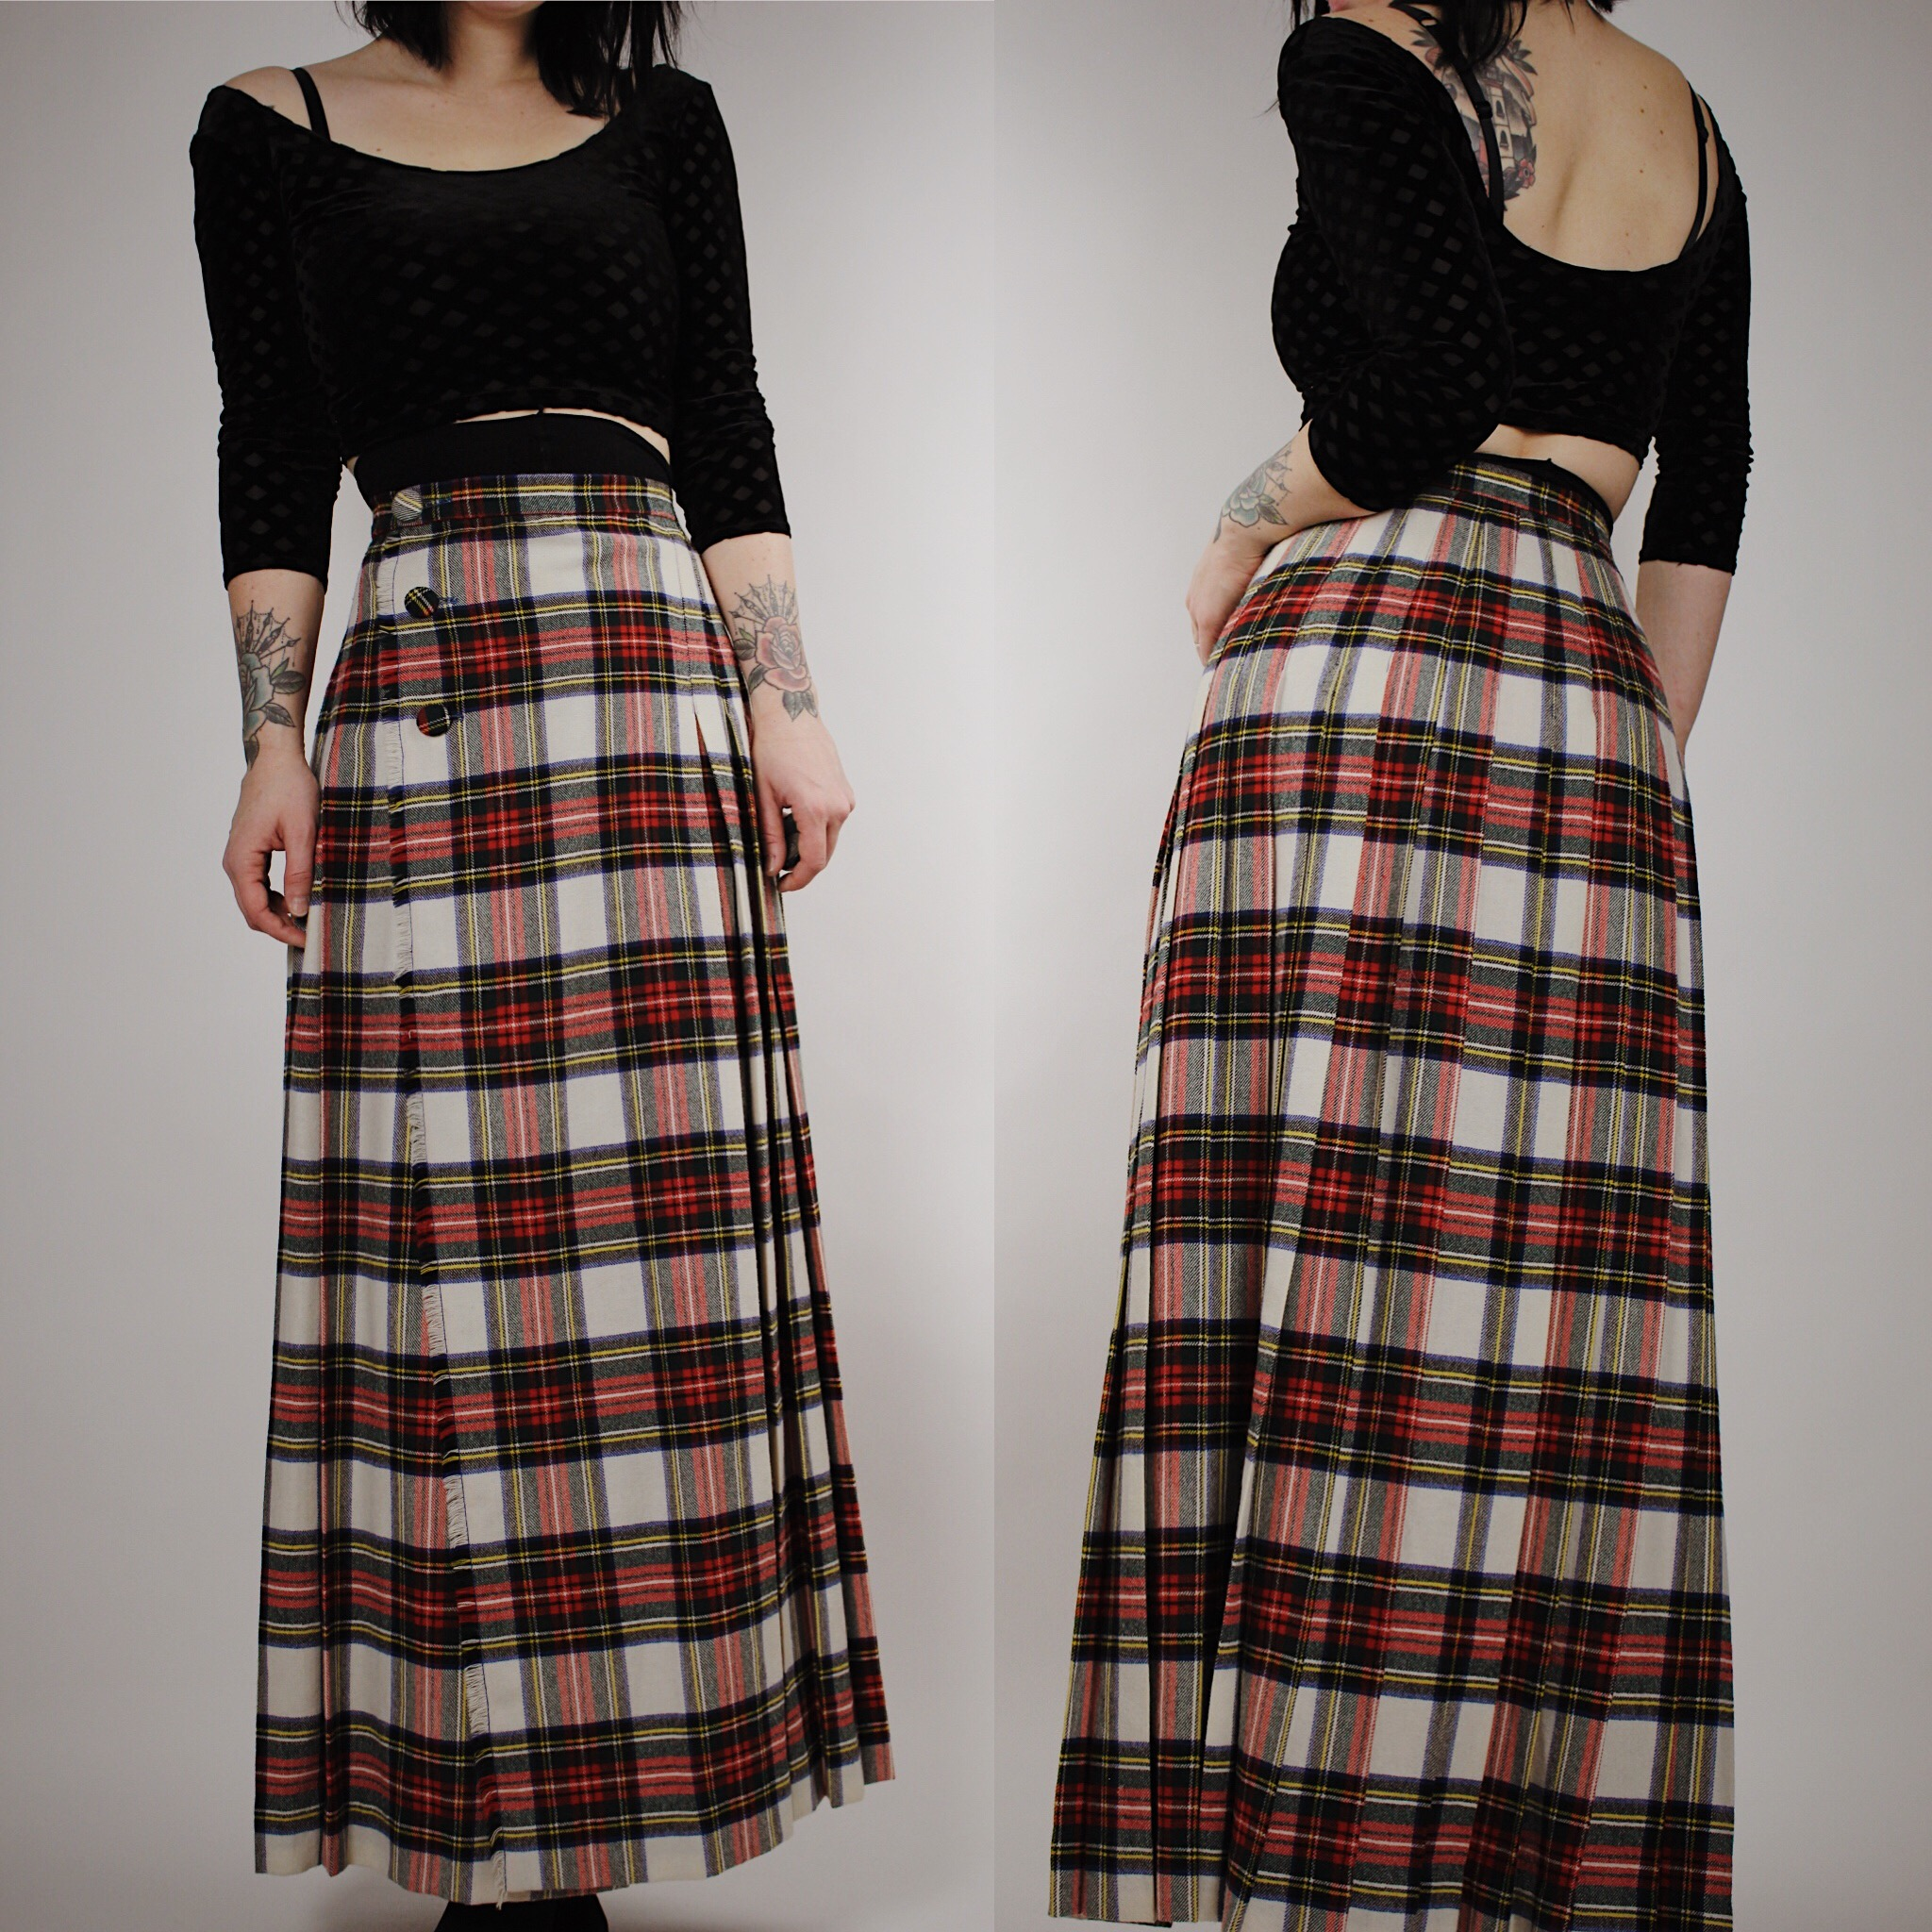 7e0bcc9626 RESERVED FOR SOPHIE - Vintage 70s Winter Vibes Plaid Flannel Foldover Maxi  Skirt